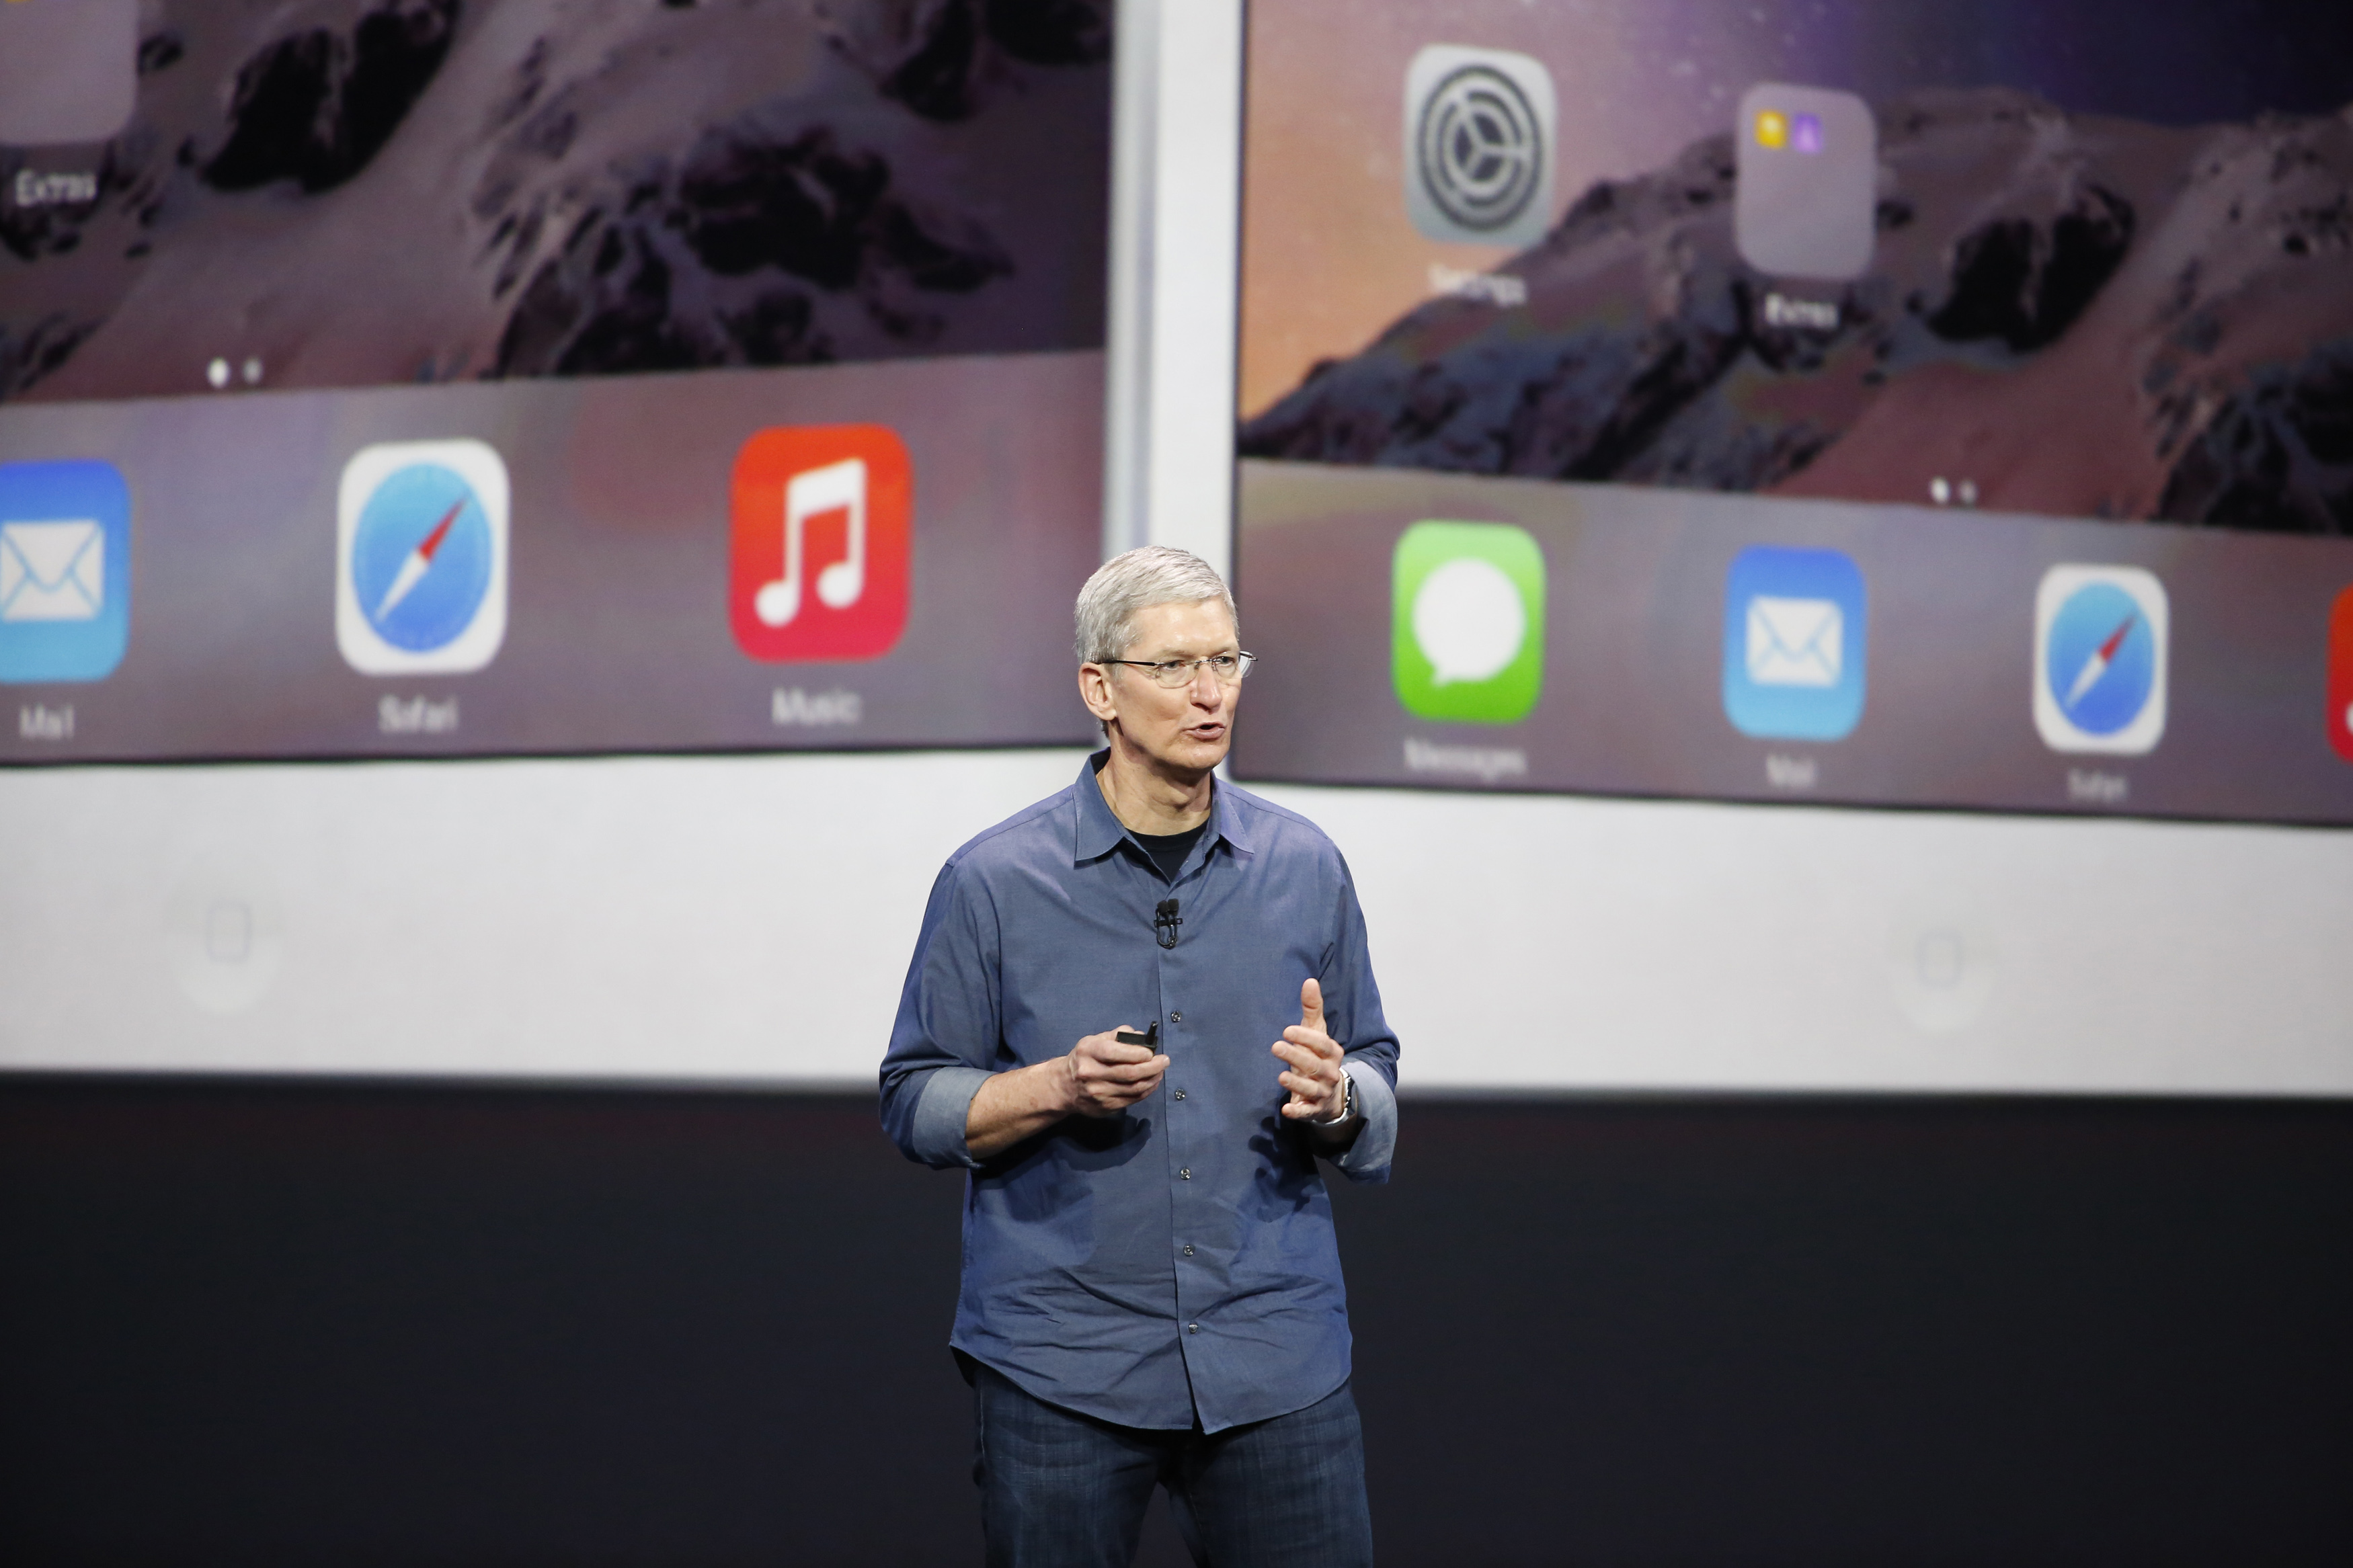 iPhone 6, Apple Watch and Tim Cook all impress, but questions remain